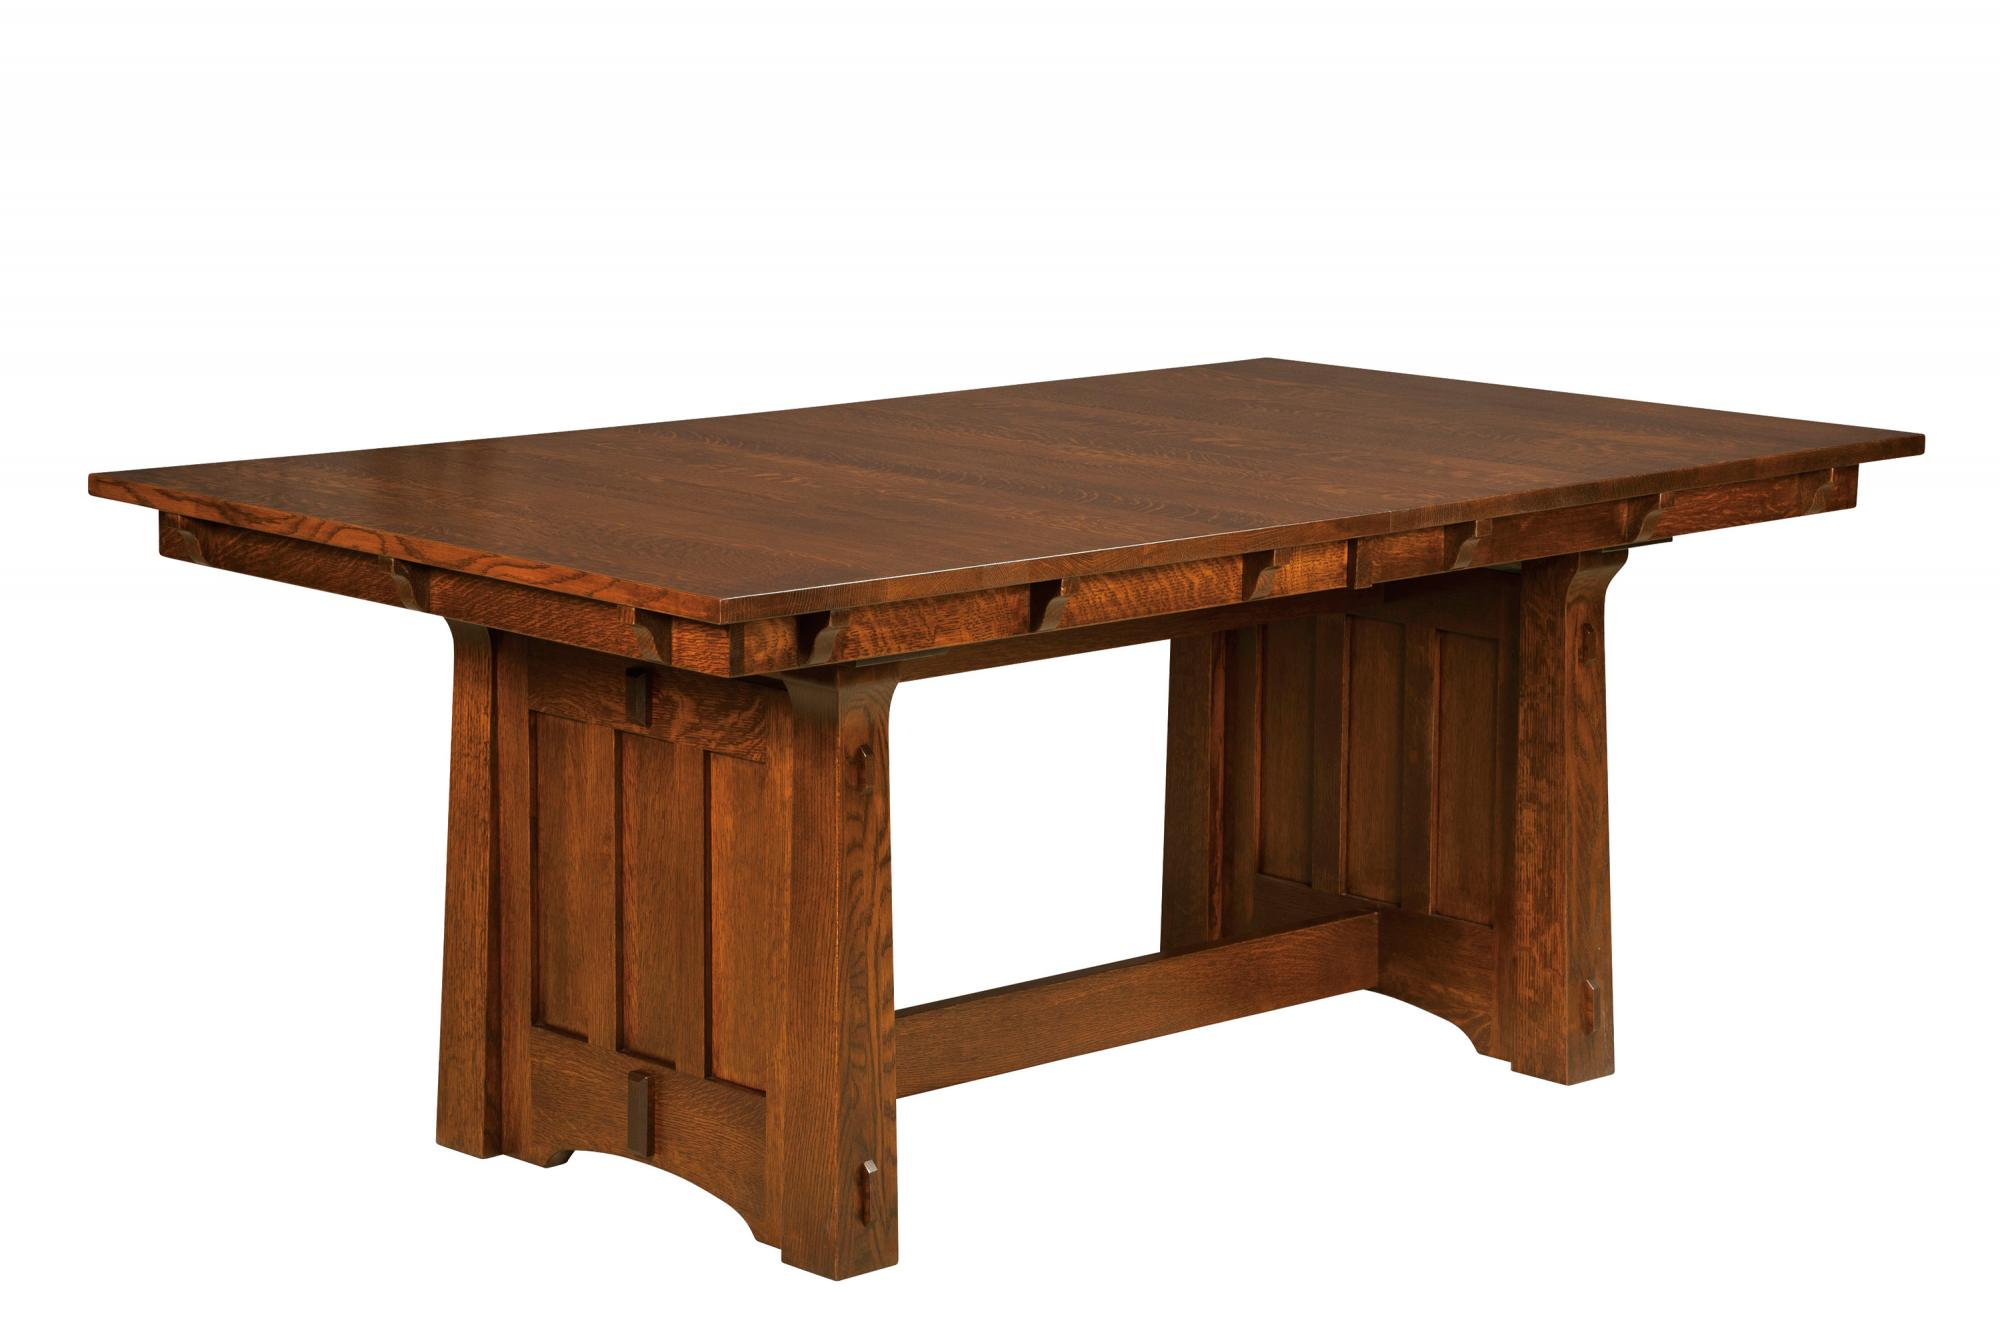 Beaumont Trestle Table Amish Furniture Store Mankato Mn